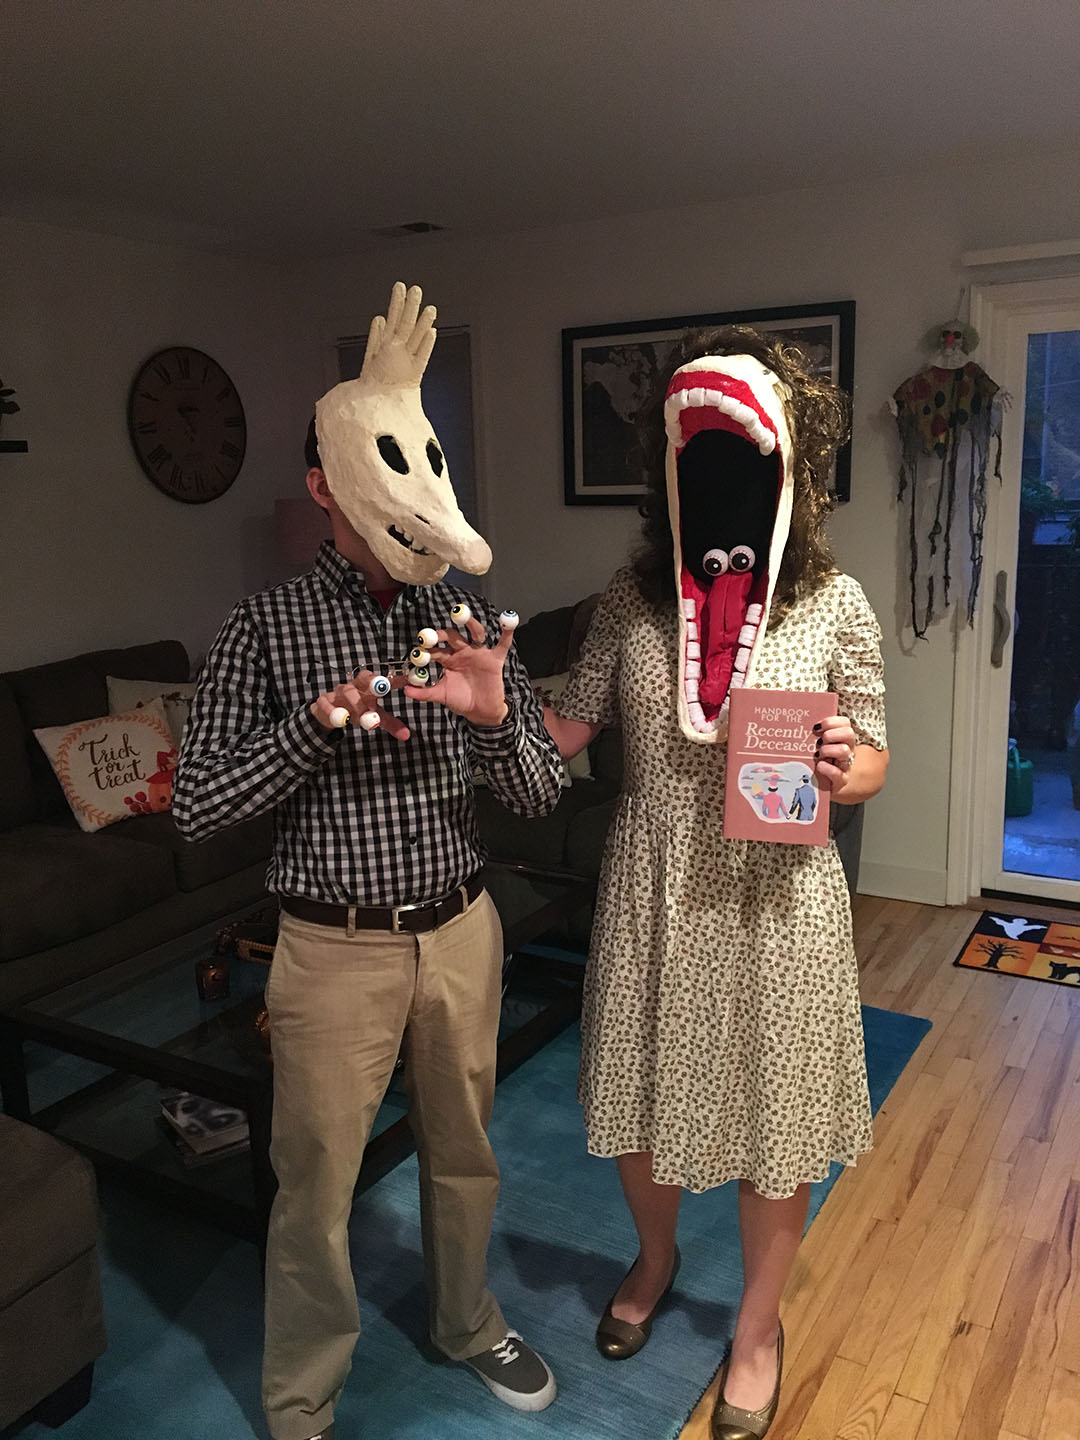 The_Maitlands_Beetlejuice_Halloween_costumes.JPG